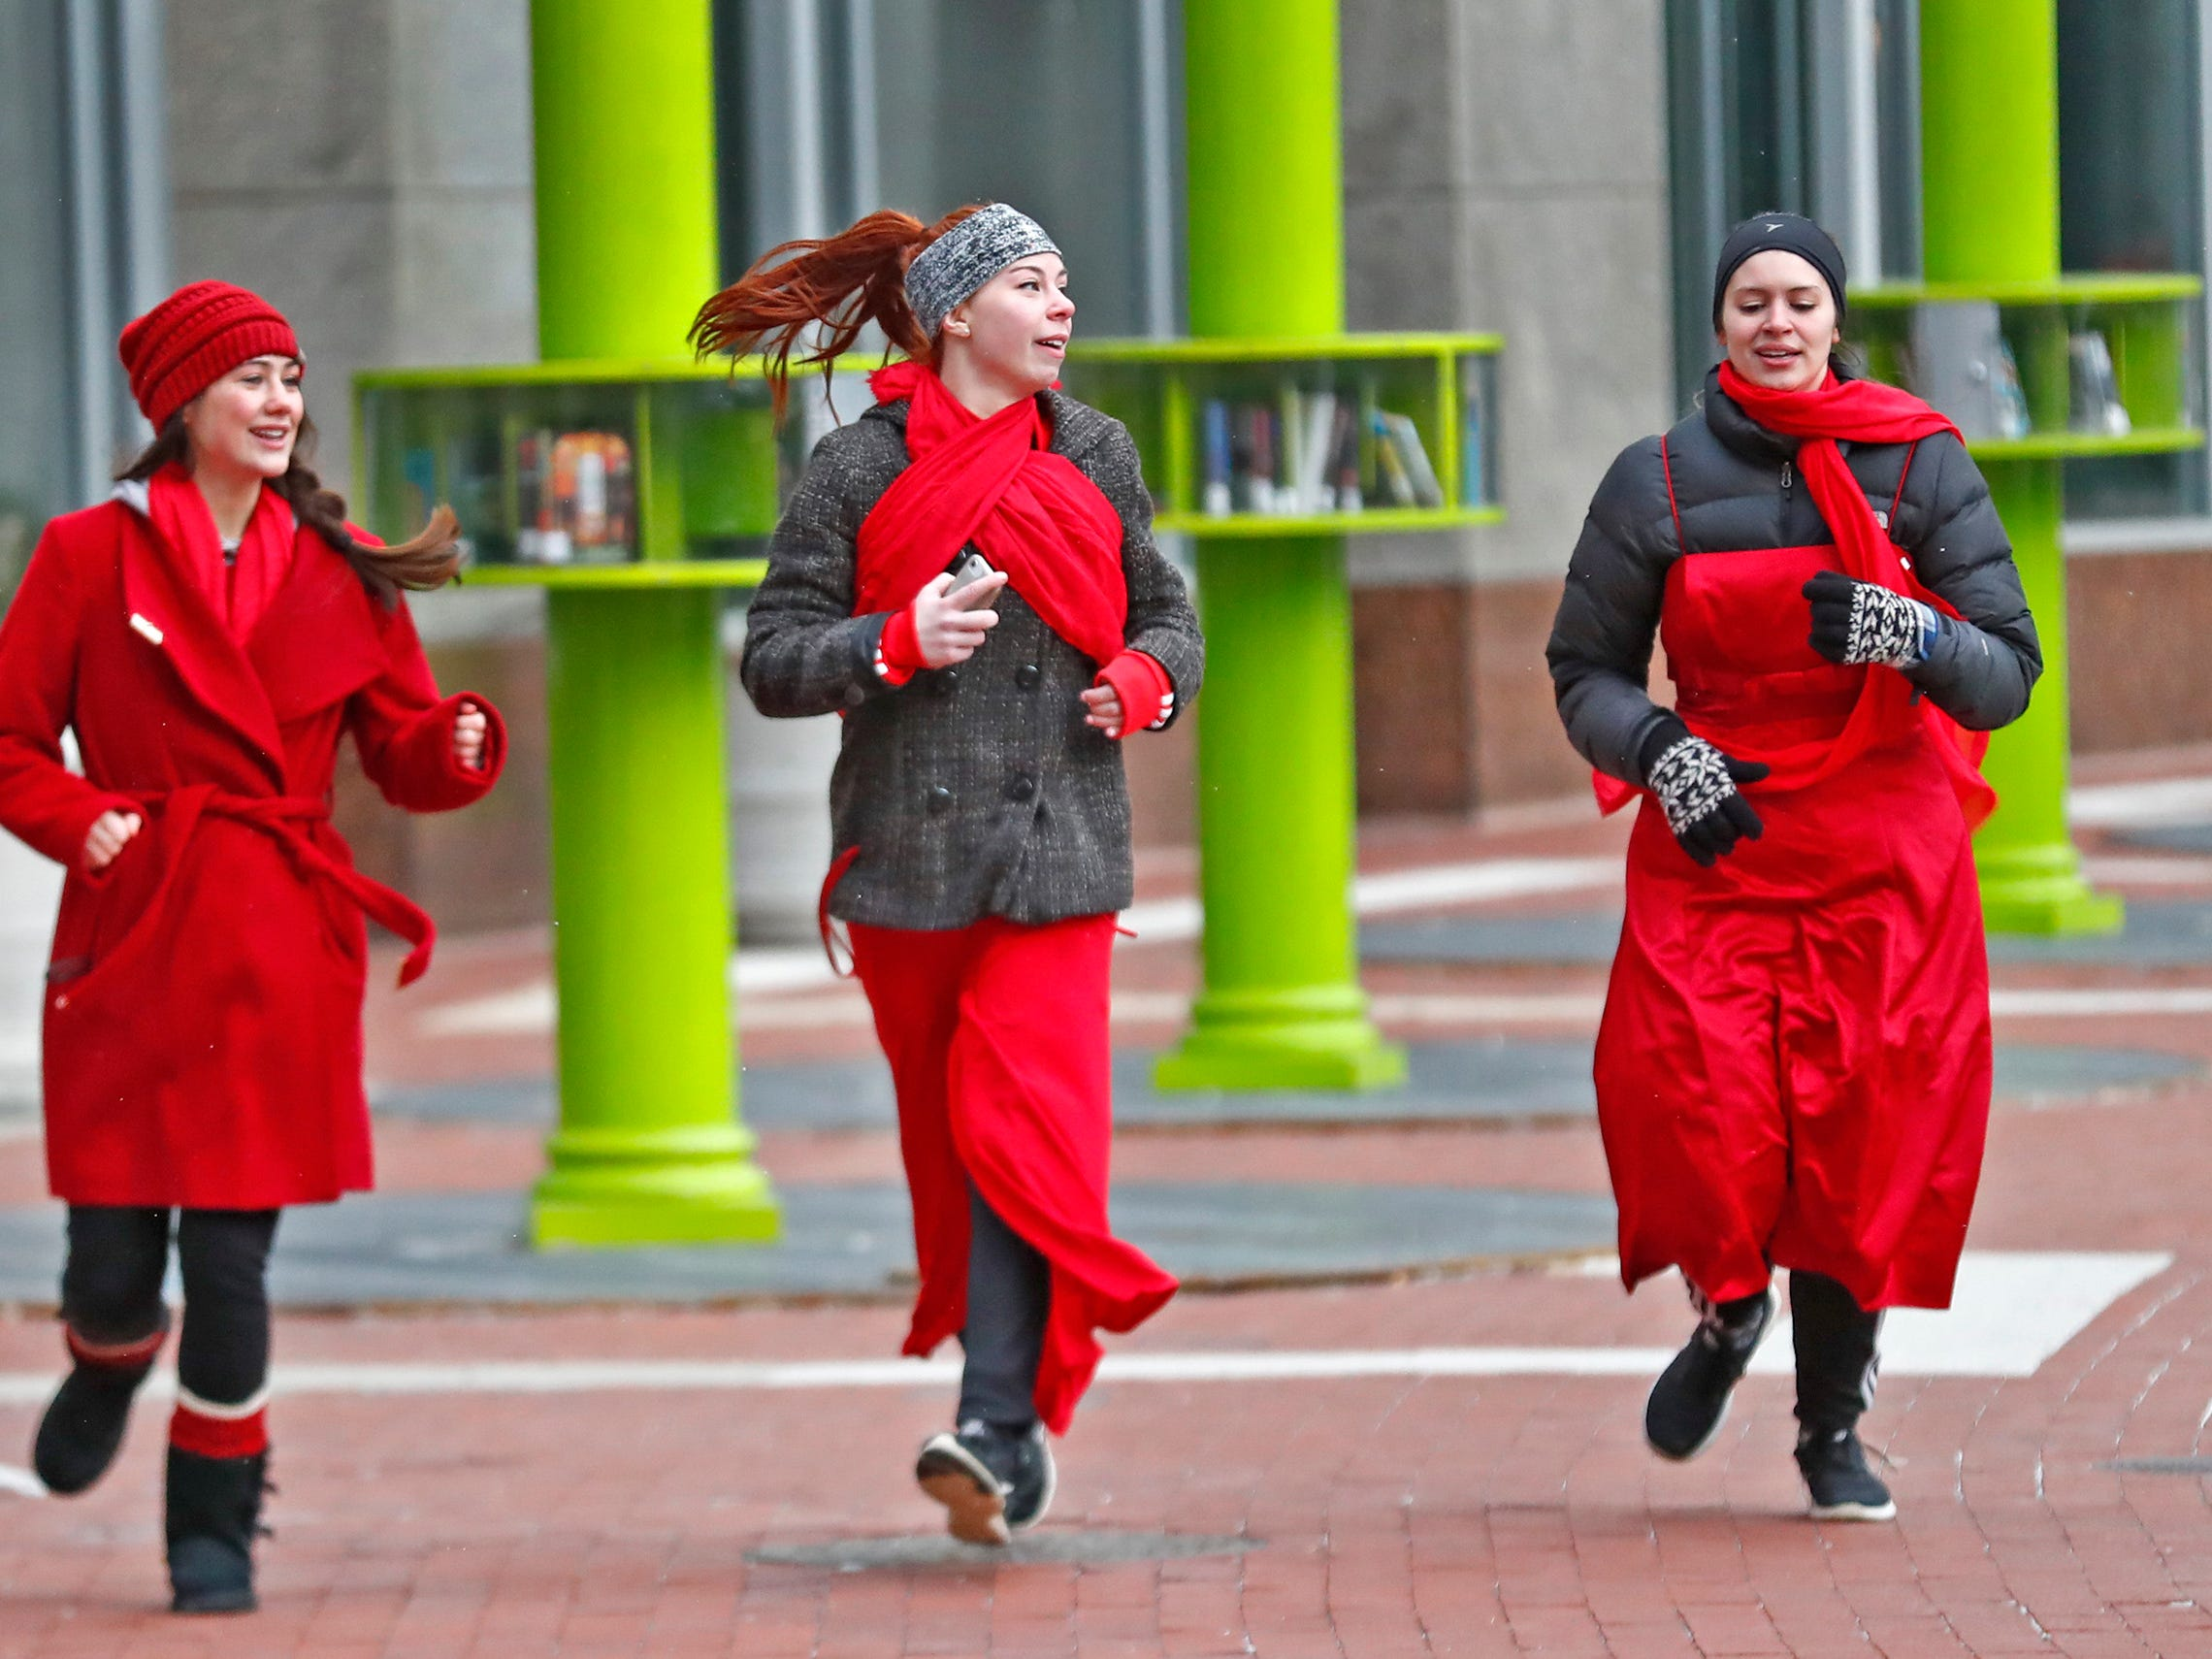 Sydni Yates, from left, Melissa Yannetti, and Caitie Harmon wear red as they dash around Monument Circle for the Red Dress Dash, Friday, Feb. 8, 2019.  The American Heart Association put on the seventh annual event to support women's heart health.  The event raises awareness for the American Heart Association's Go Red For Women movement.  Heart disease is the leading cause of death among women.